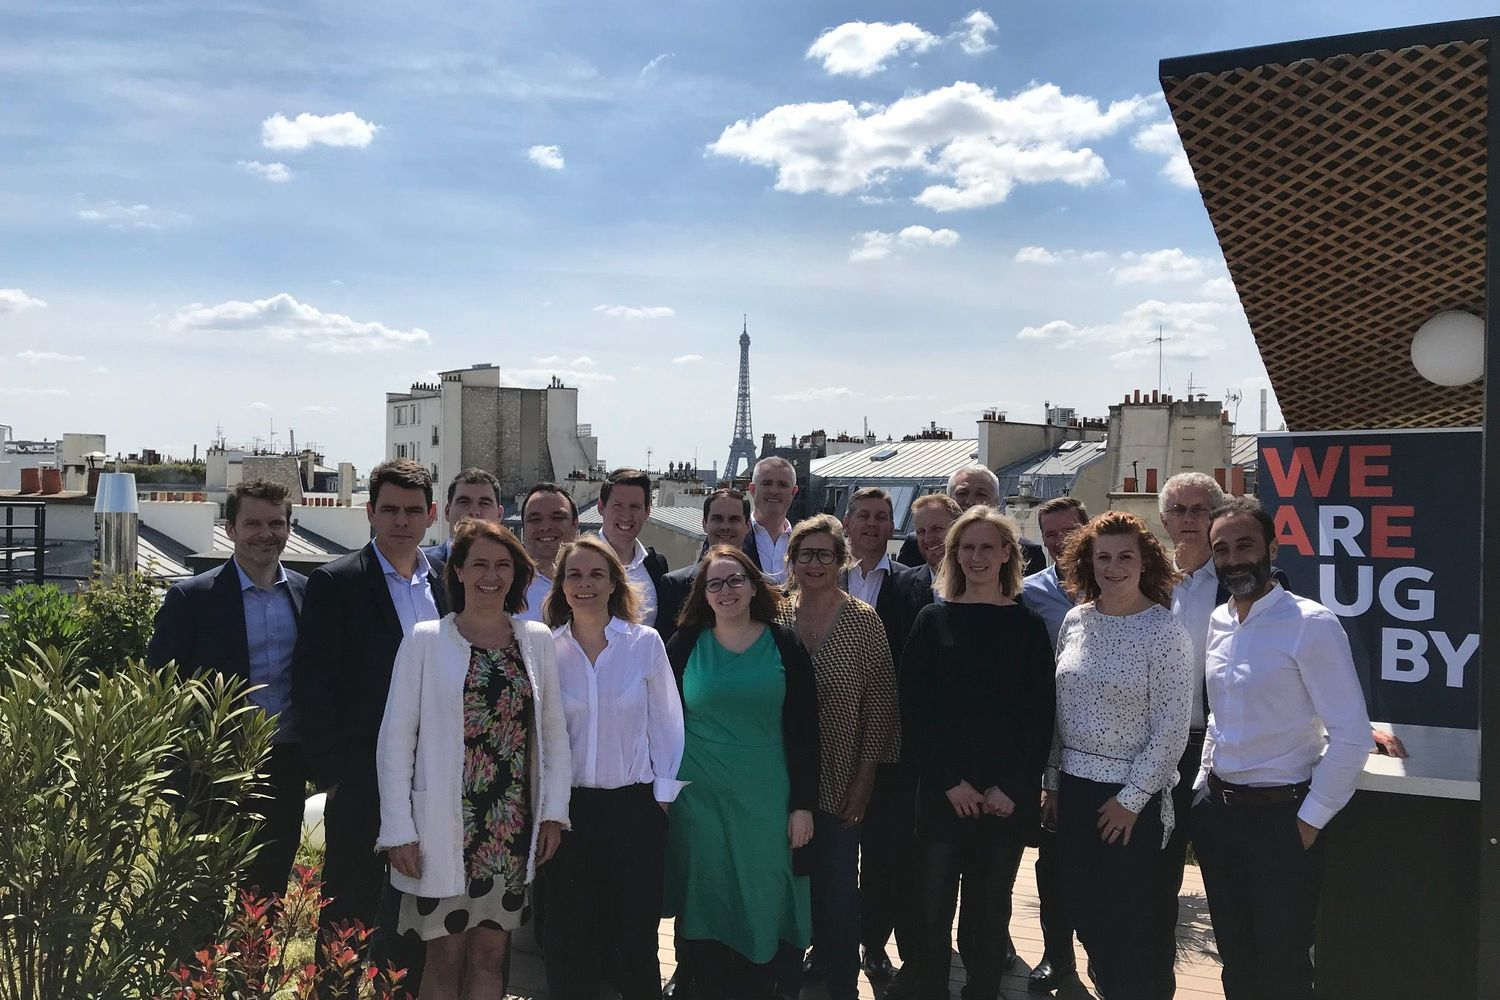 World Rugby / France 2023 meetings in May 2019